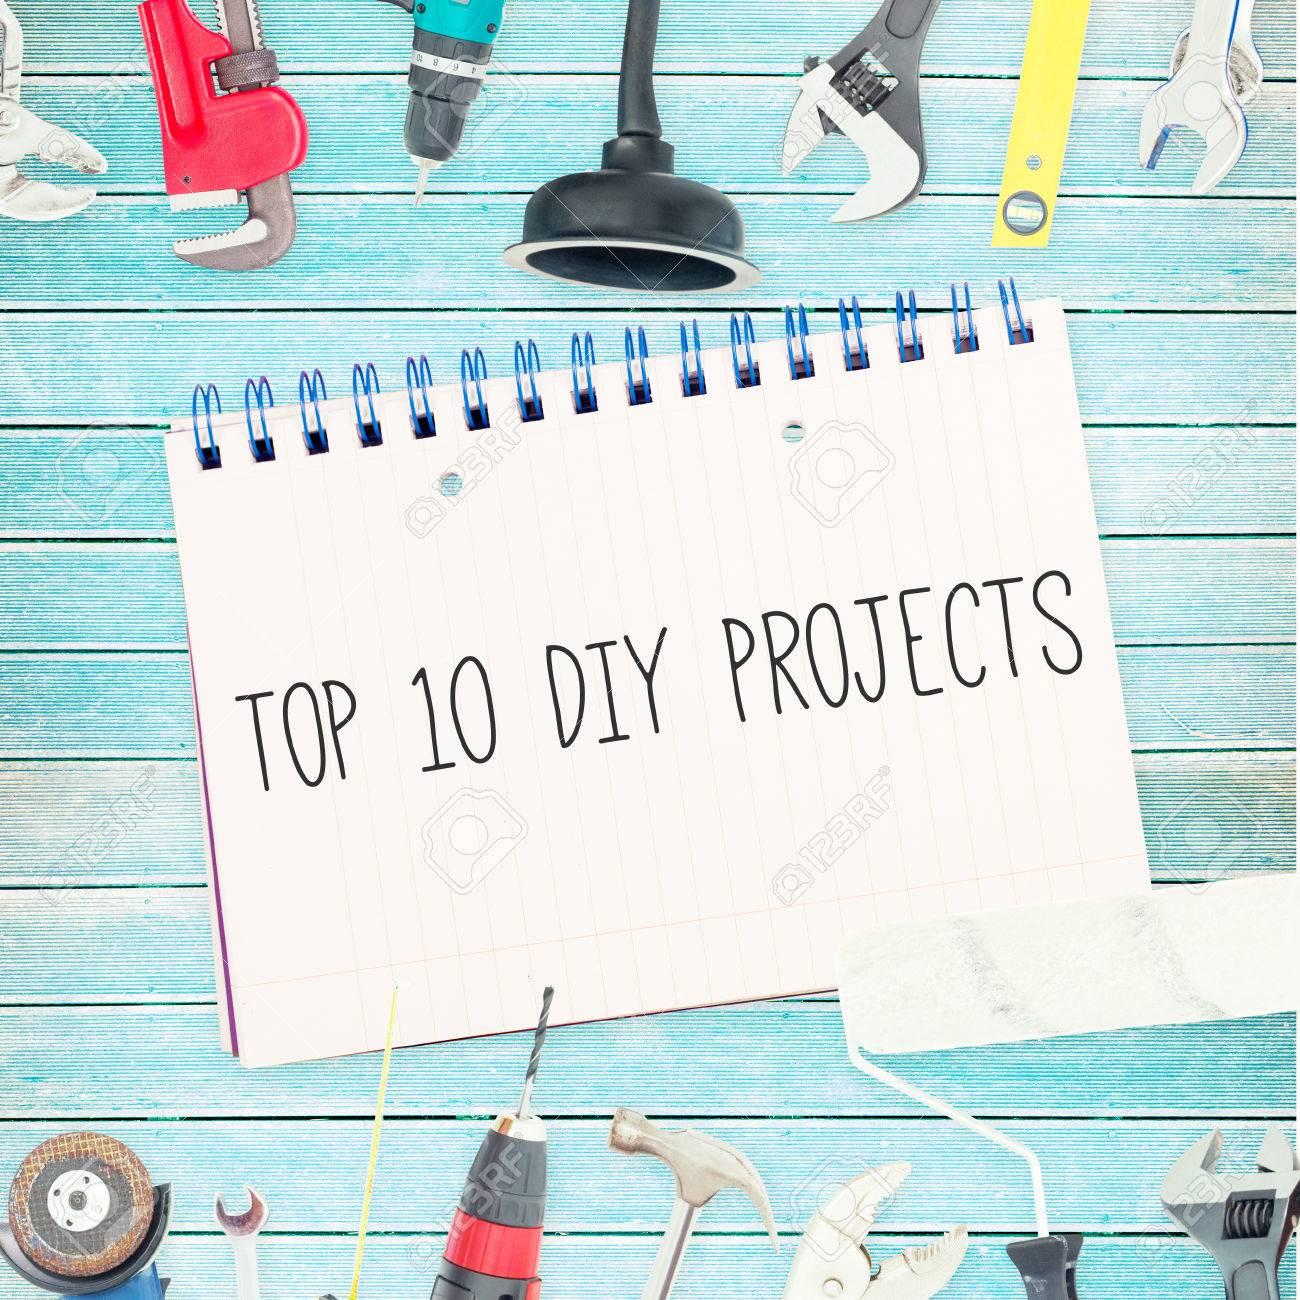 Tools For Diy Projects The Word Top 10 Diy Projects Against Tools And Notepad On Wooden